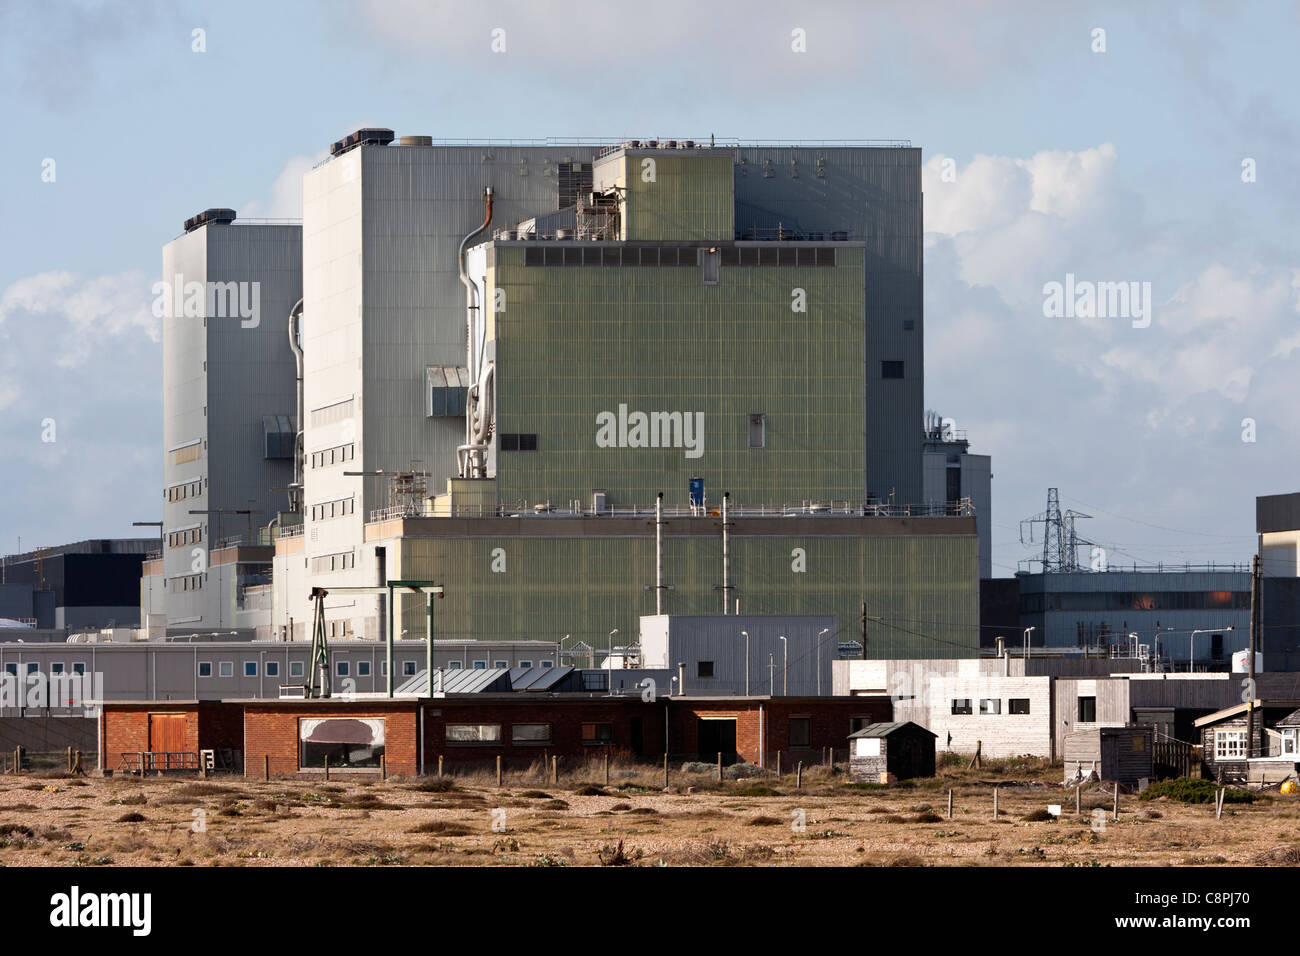 Dungeness nuclear power station UK - Stock Image